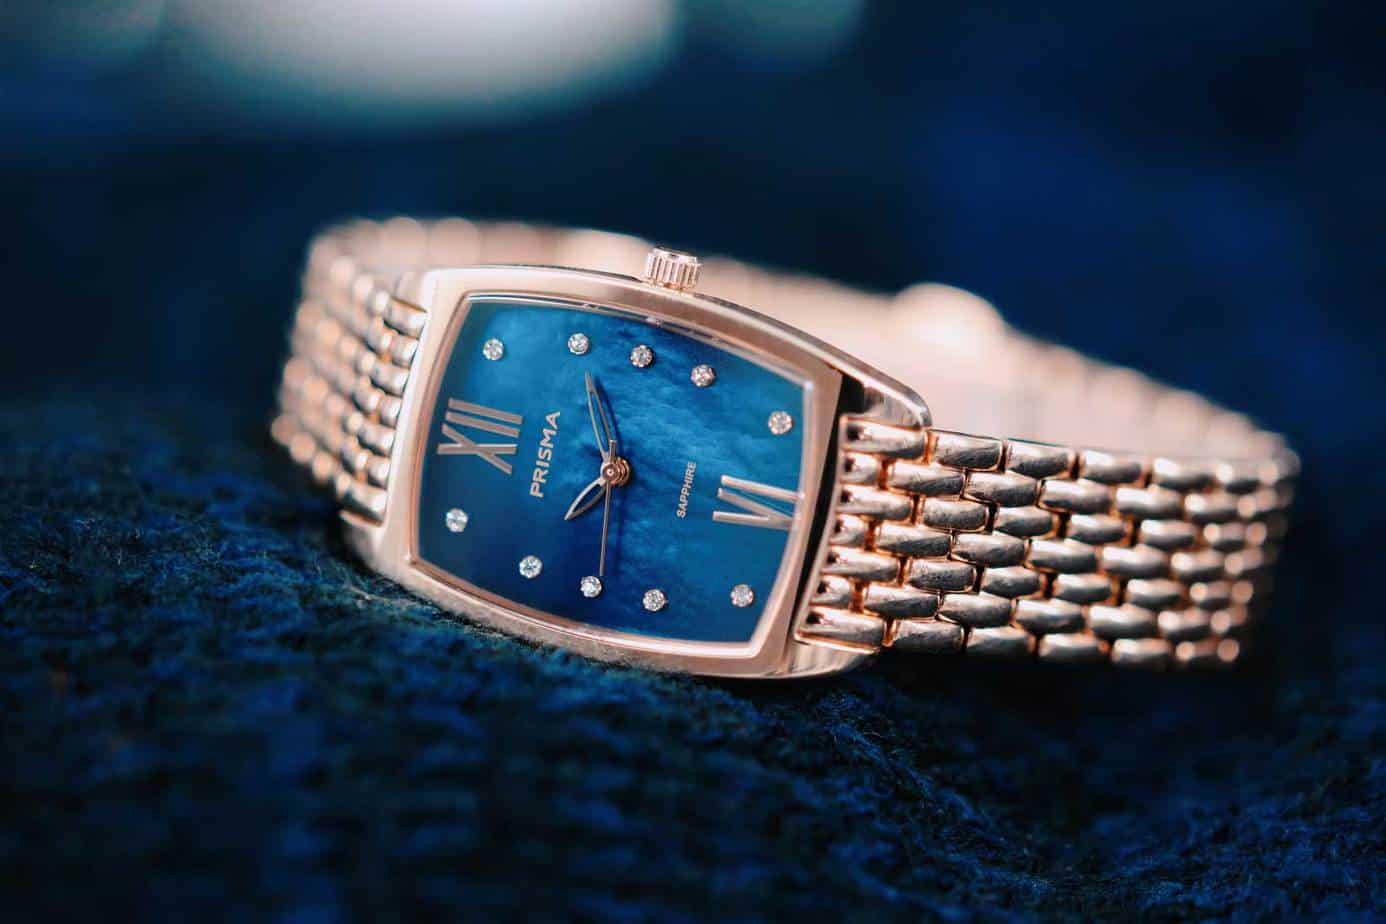 prisma blauw dameshorloge blue ladies watch blauwe wijzerplaat